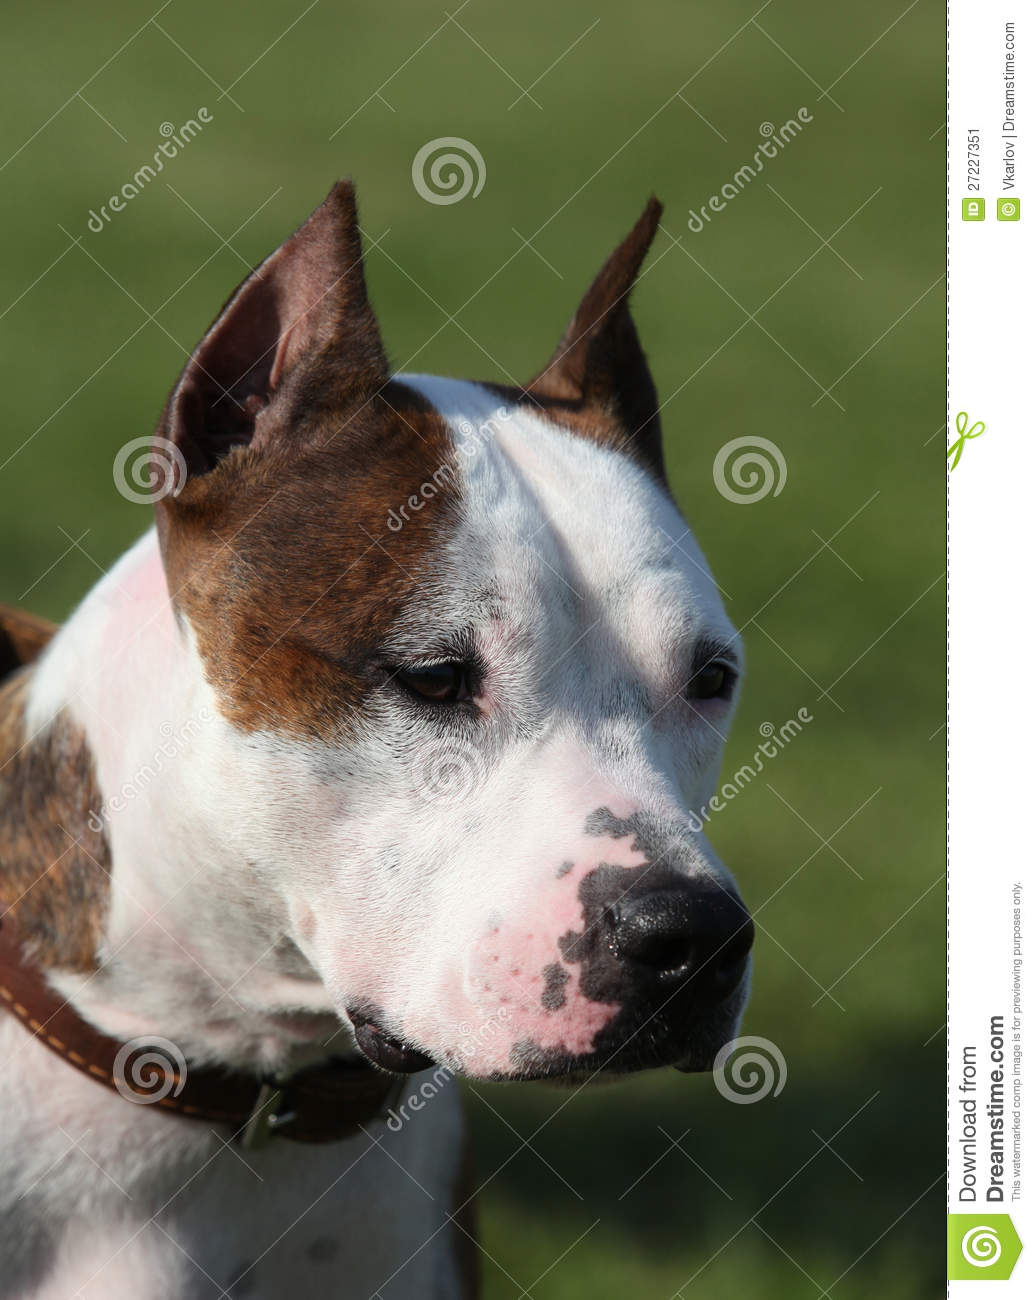 Beautiful American Staffordshire Terrier Stock Image - Image: 27227351